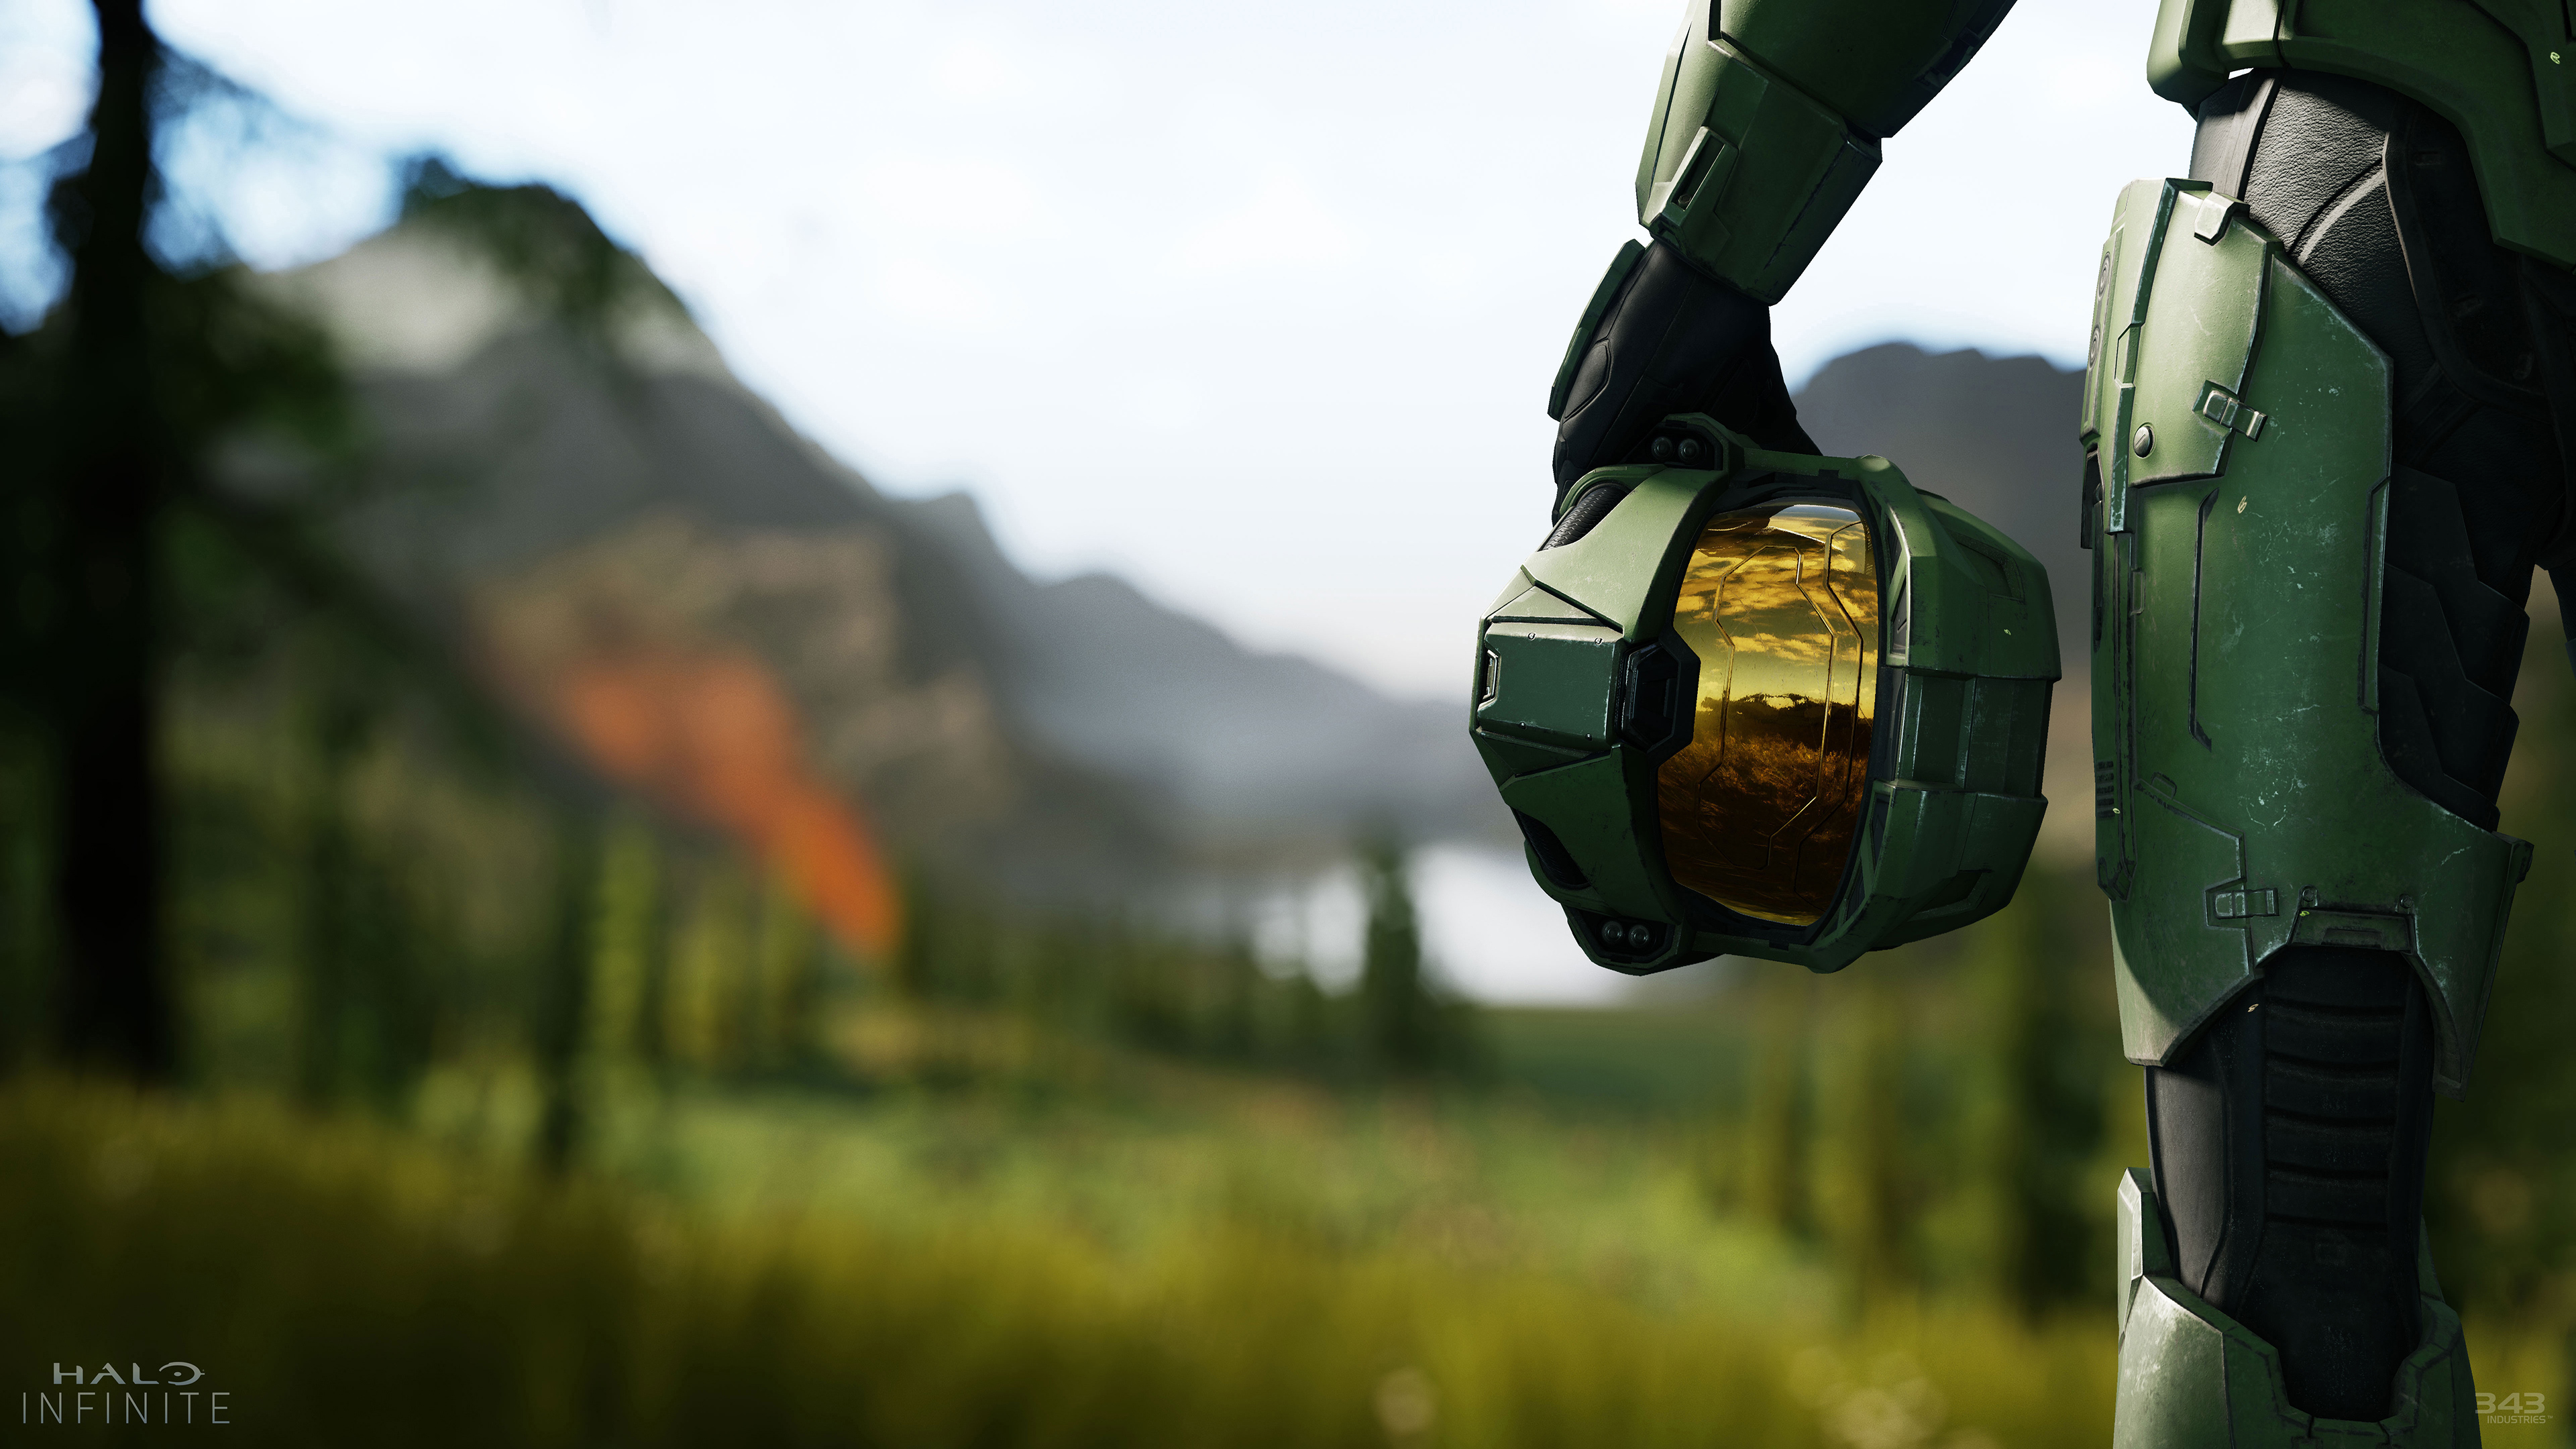 Halo Infinite Hd Games 4k Wallpapers Images Backgrounds